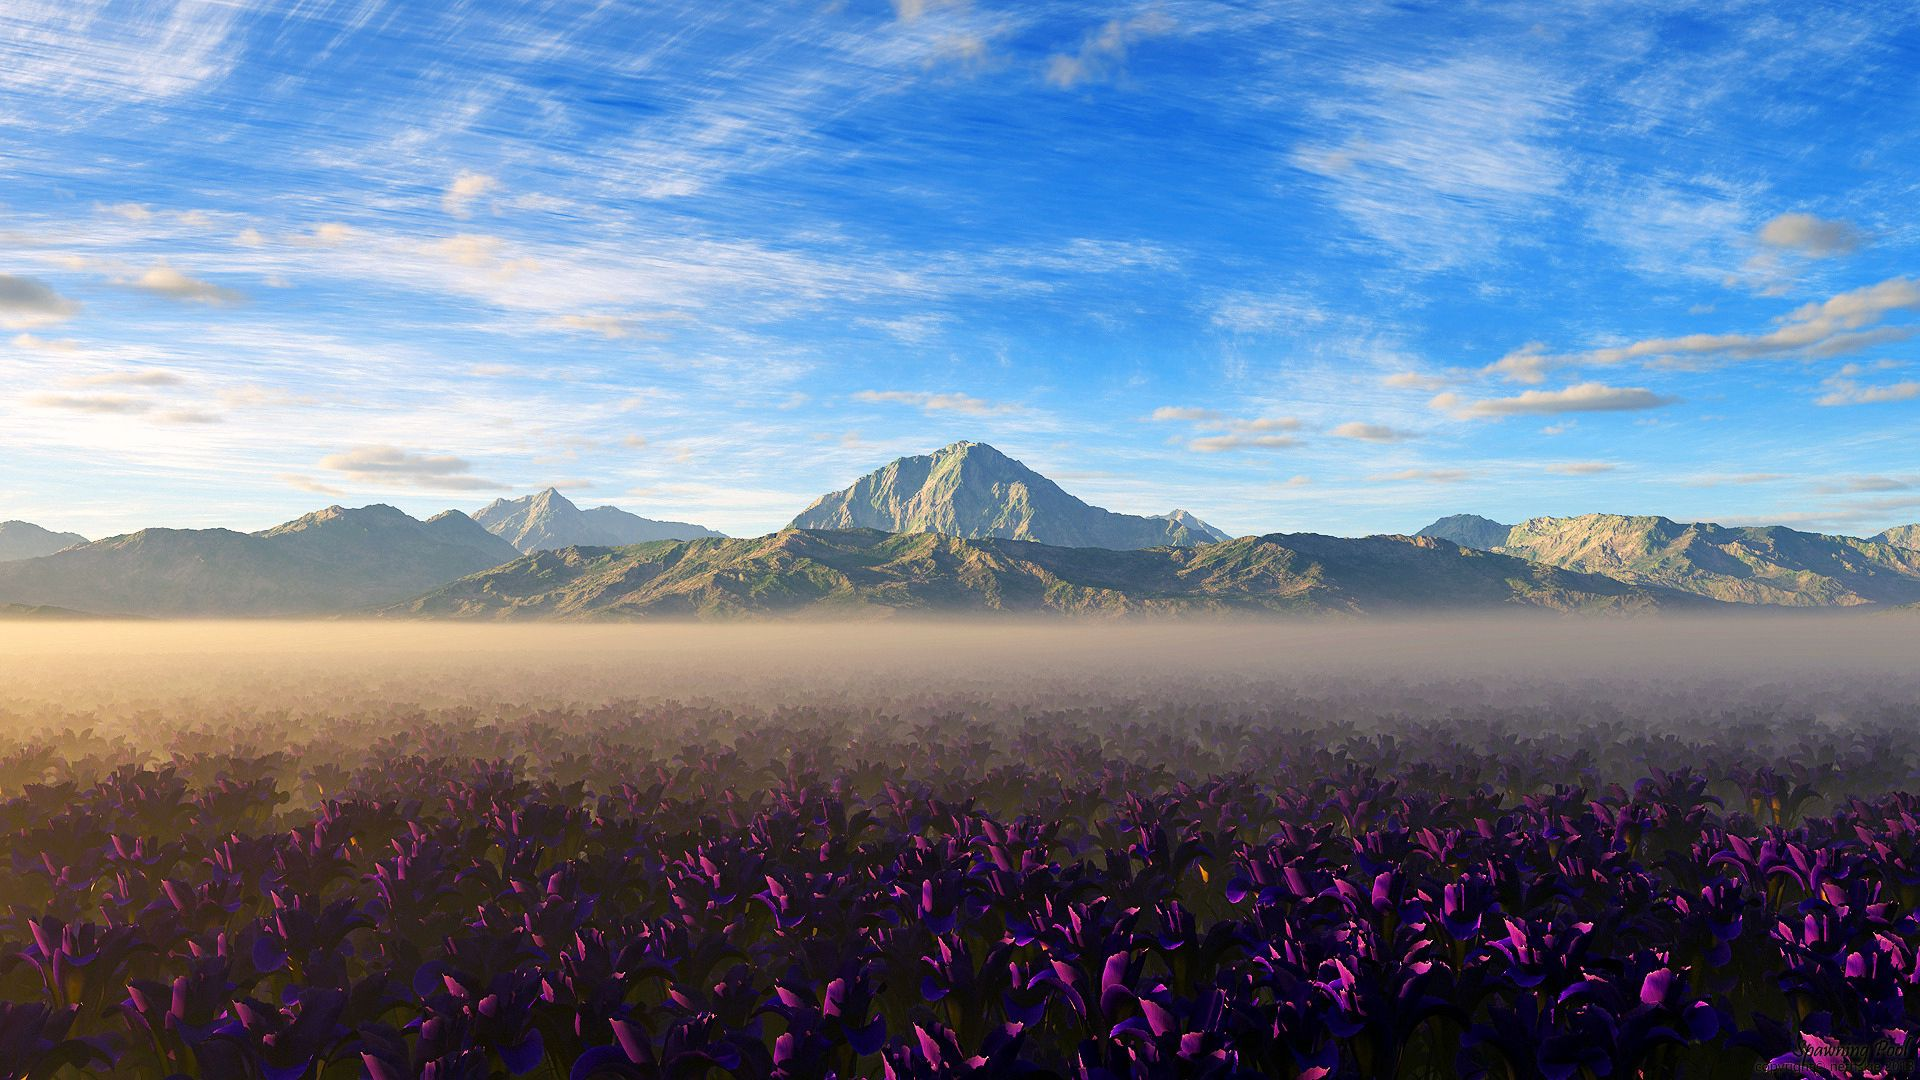 68008 download wallpaper Nature, Sky, Stones, Mountains screensavers and pictures for free